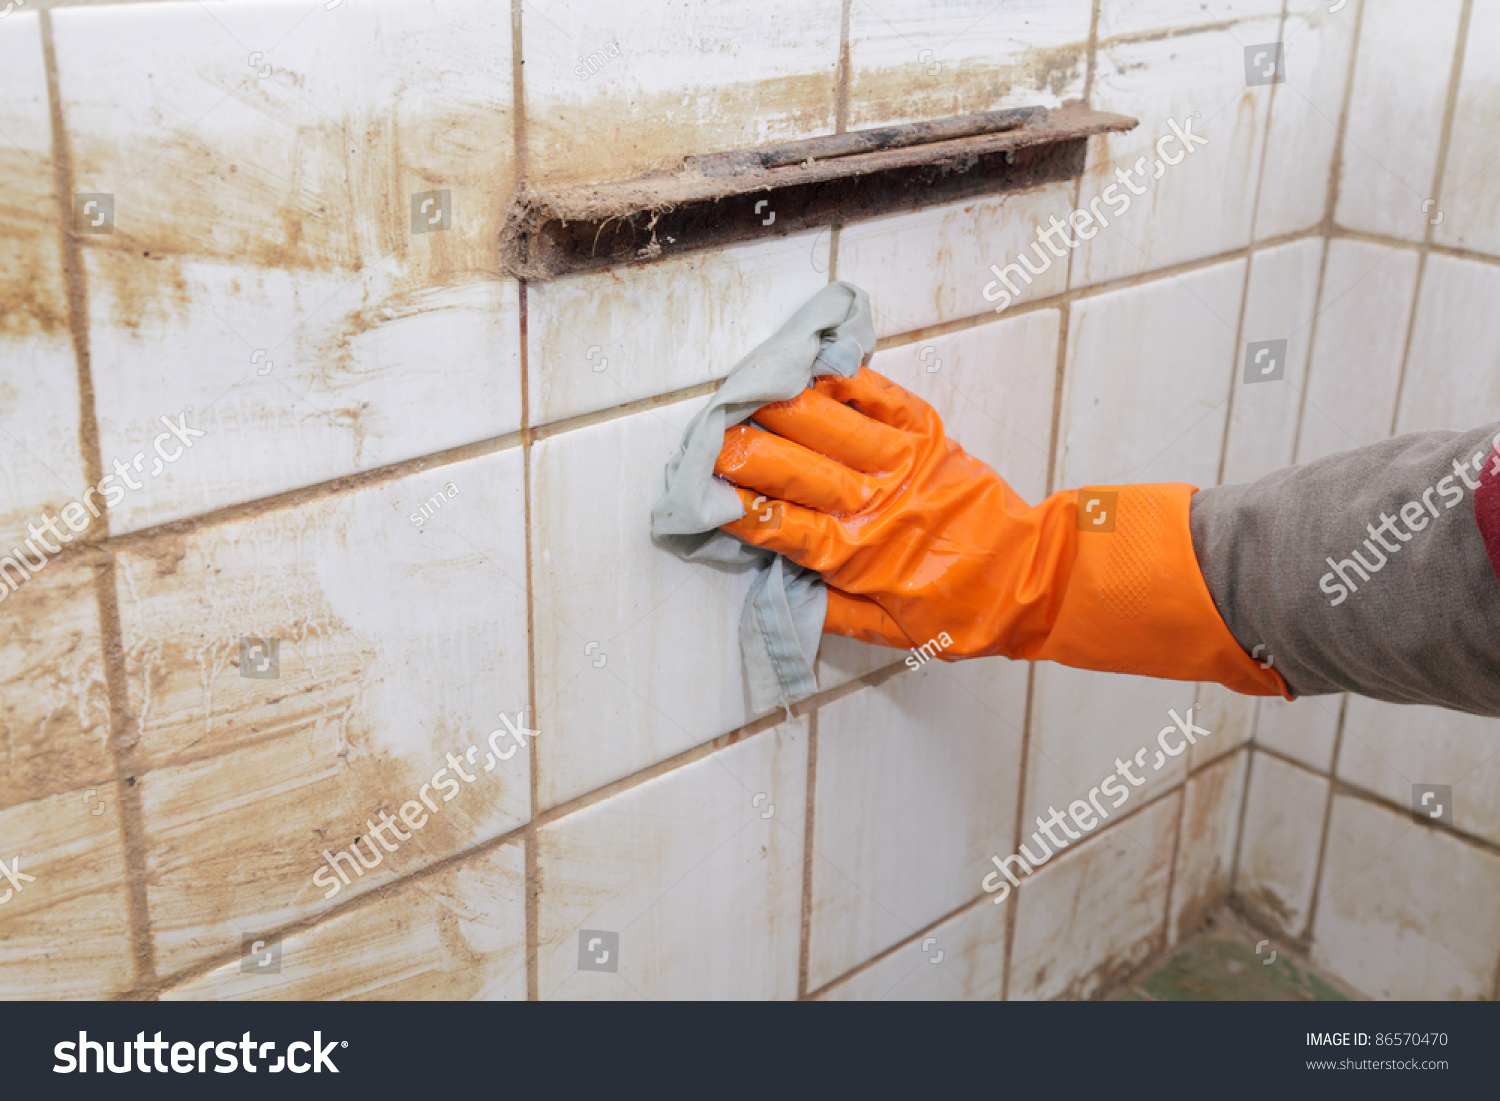 Cleaning of dirty old tiles in a bathroom. Cleaning Dirty Old Tiles Bathroom Stock Photo 86570470   Shutterstock